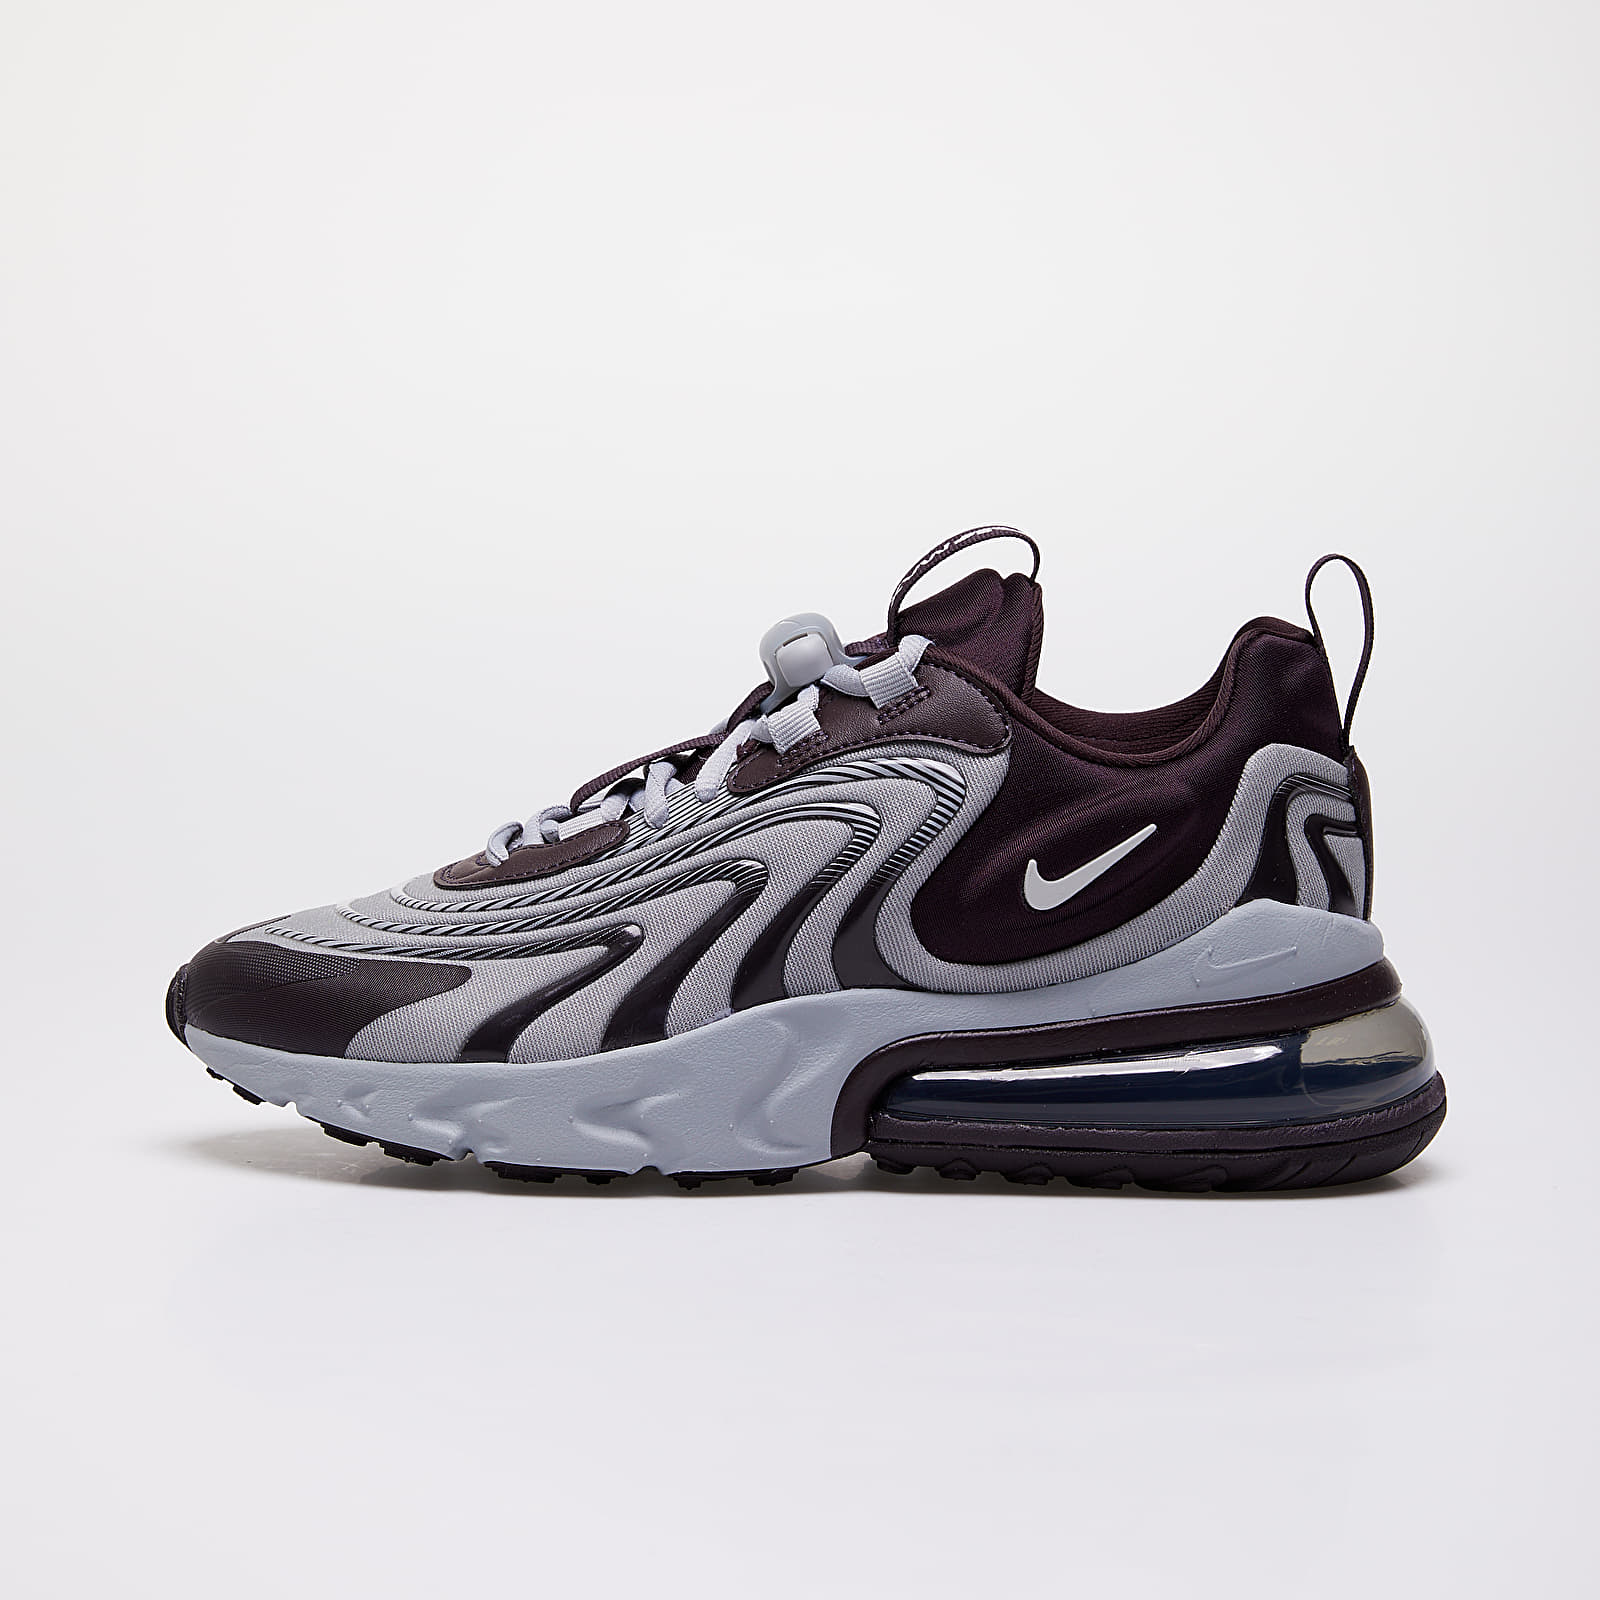 Nike W Air Max 270 React Eng Burgundy Ash Lt Smoke Grey Burgundy Ash | Footshop